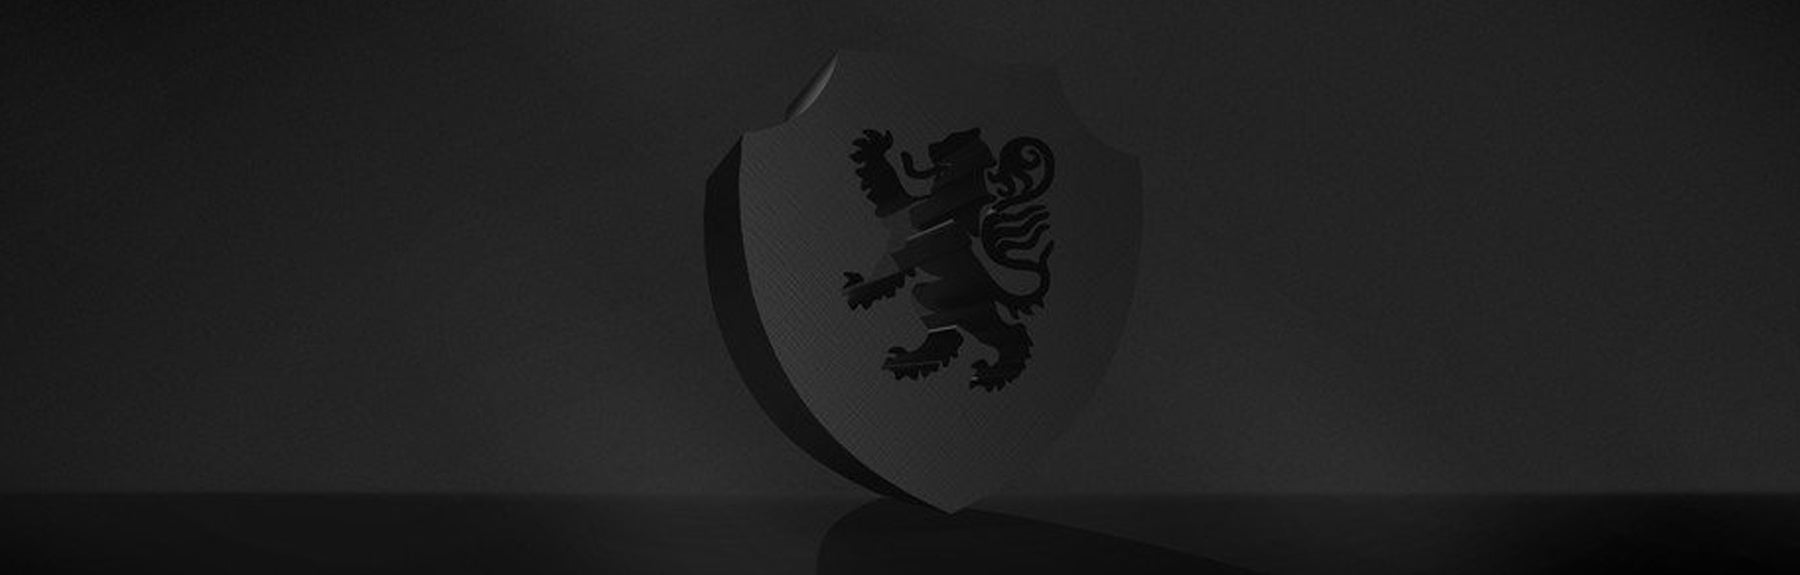 Home Page Fuzion Banner with Shield/Rampant Lion